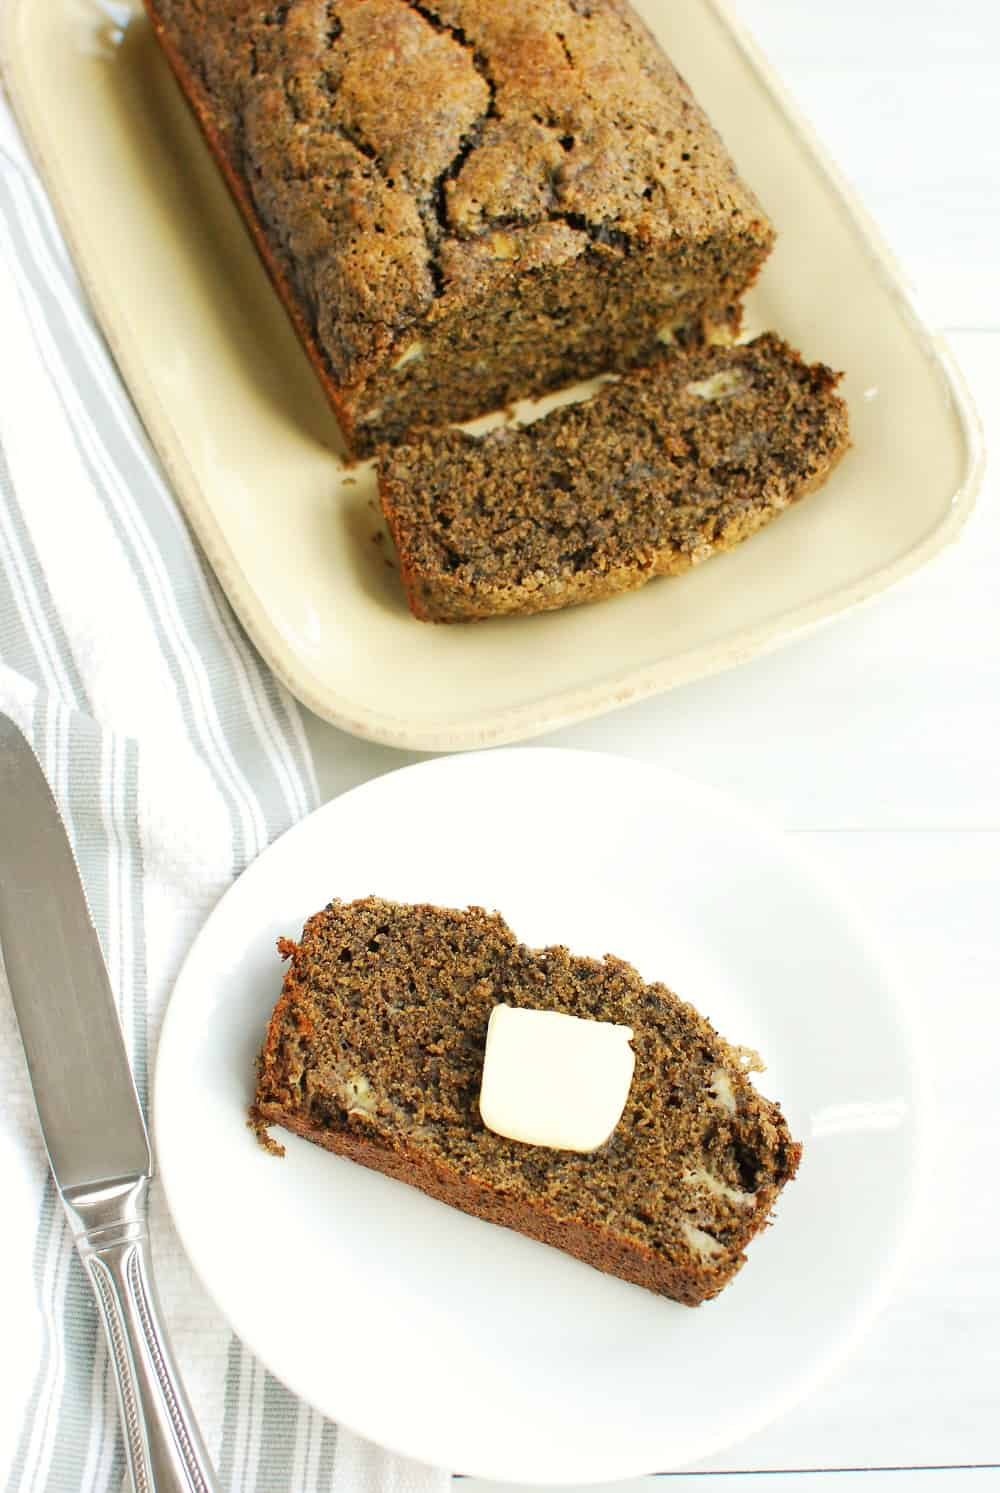 a slice of buckwheat banana bread with a pat of butter on a plate next to the rest of the loaf